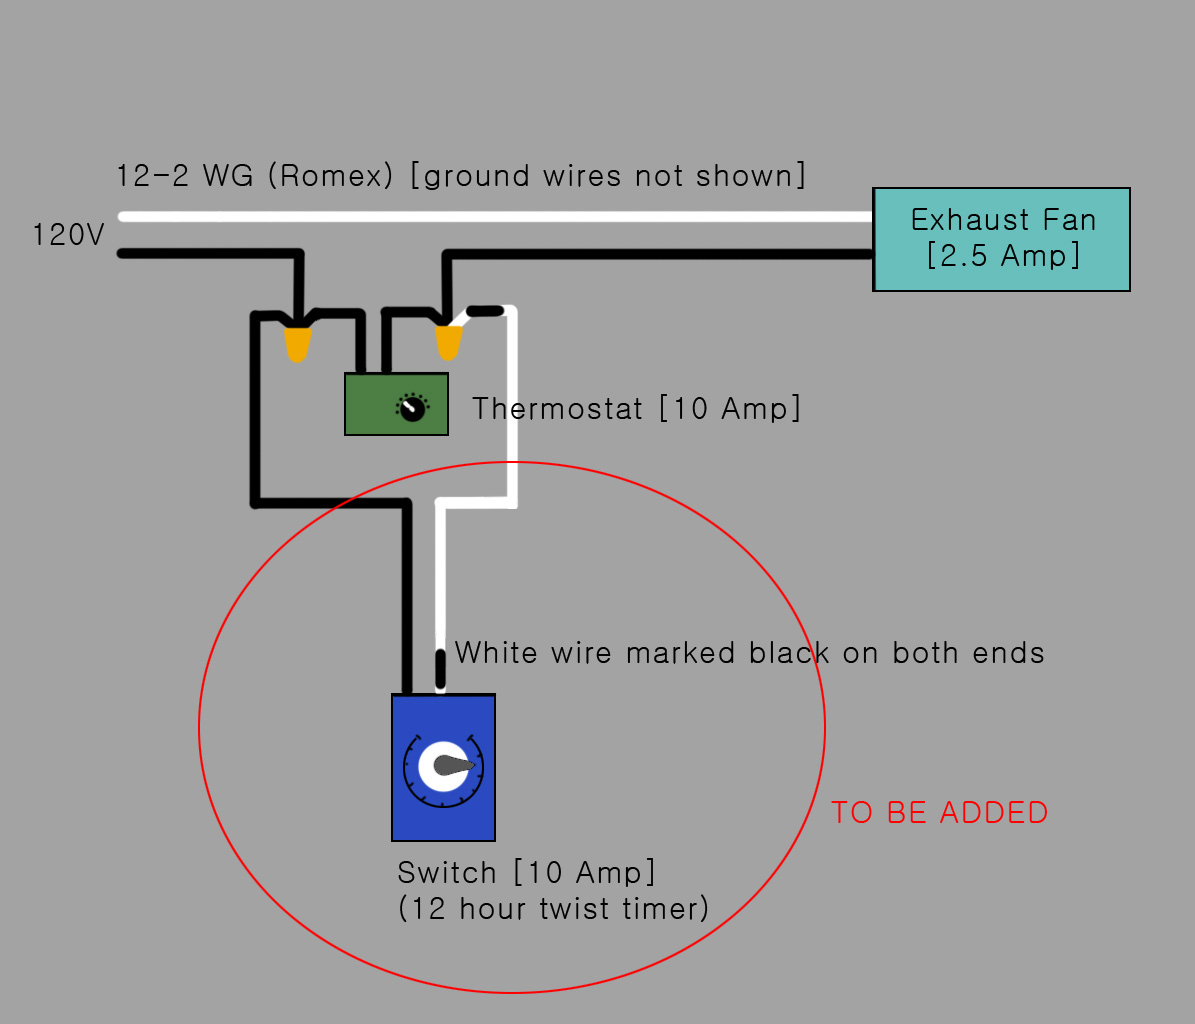 small resolution of wiring diagram for whole house fan wiring diagrams lol attic exhaust fan wiring diagram 120v attic